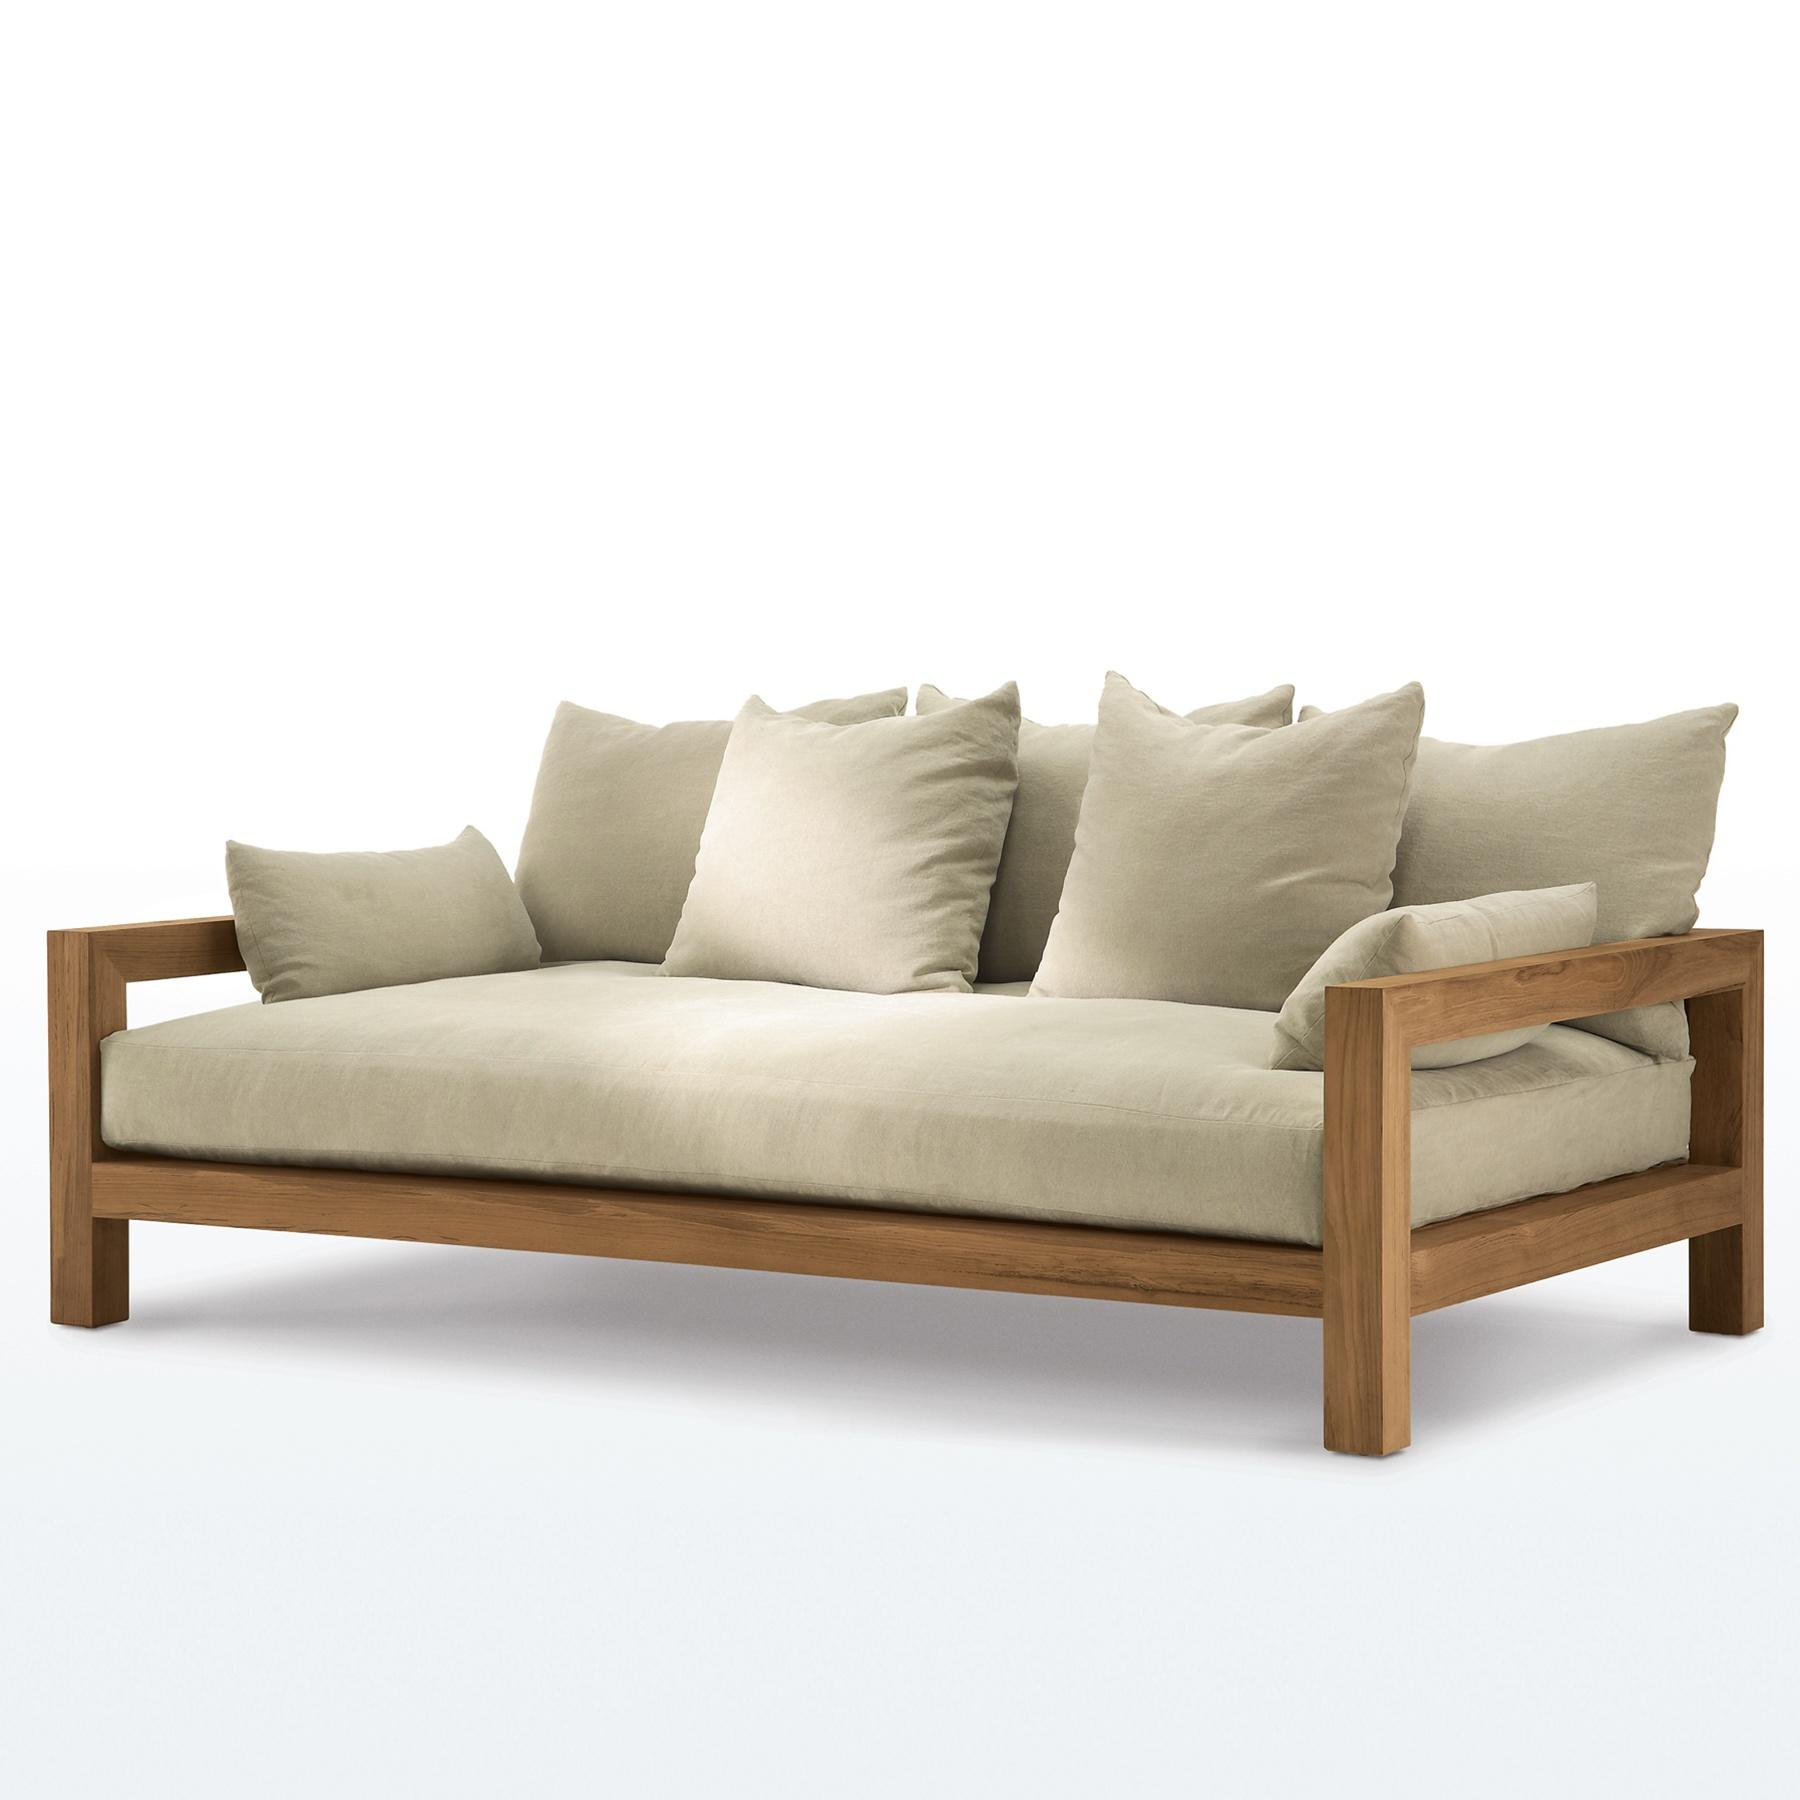 Montecito Daybed From James Perse Home Sweet Home